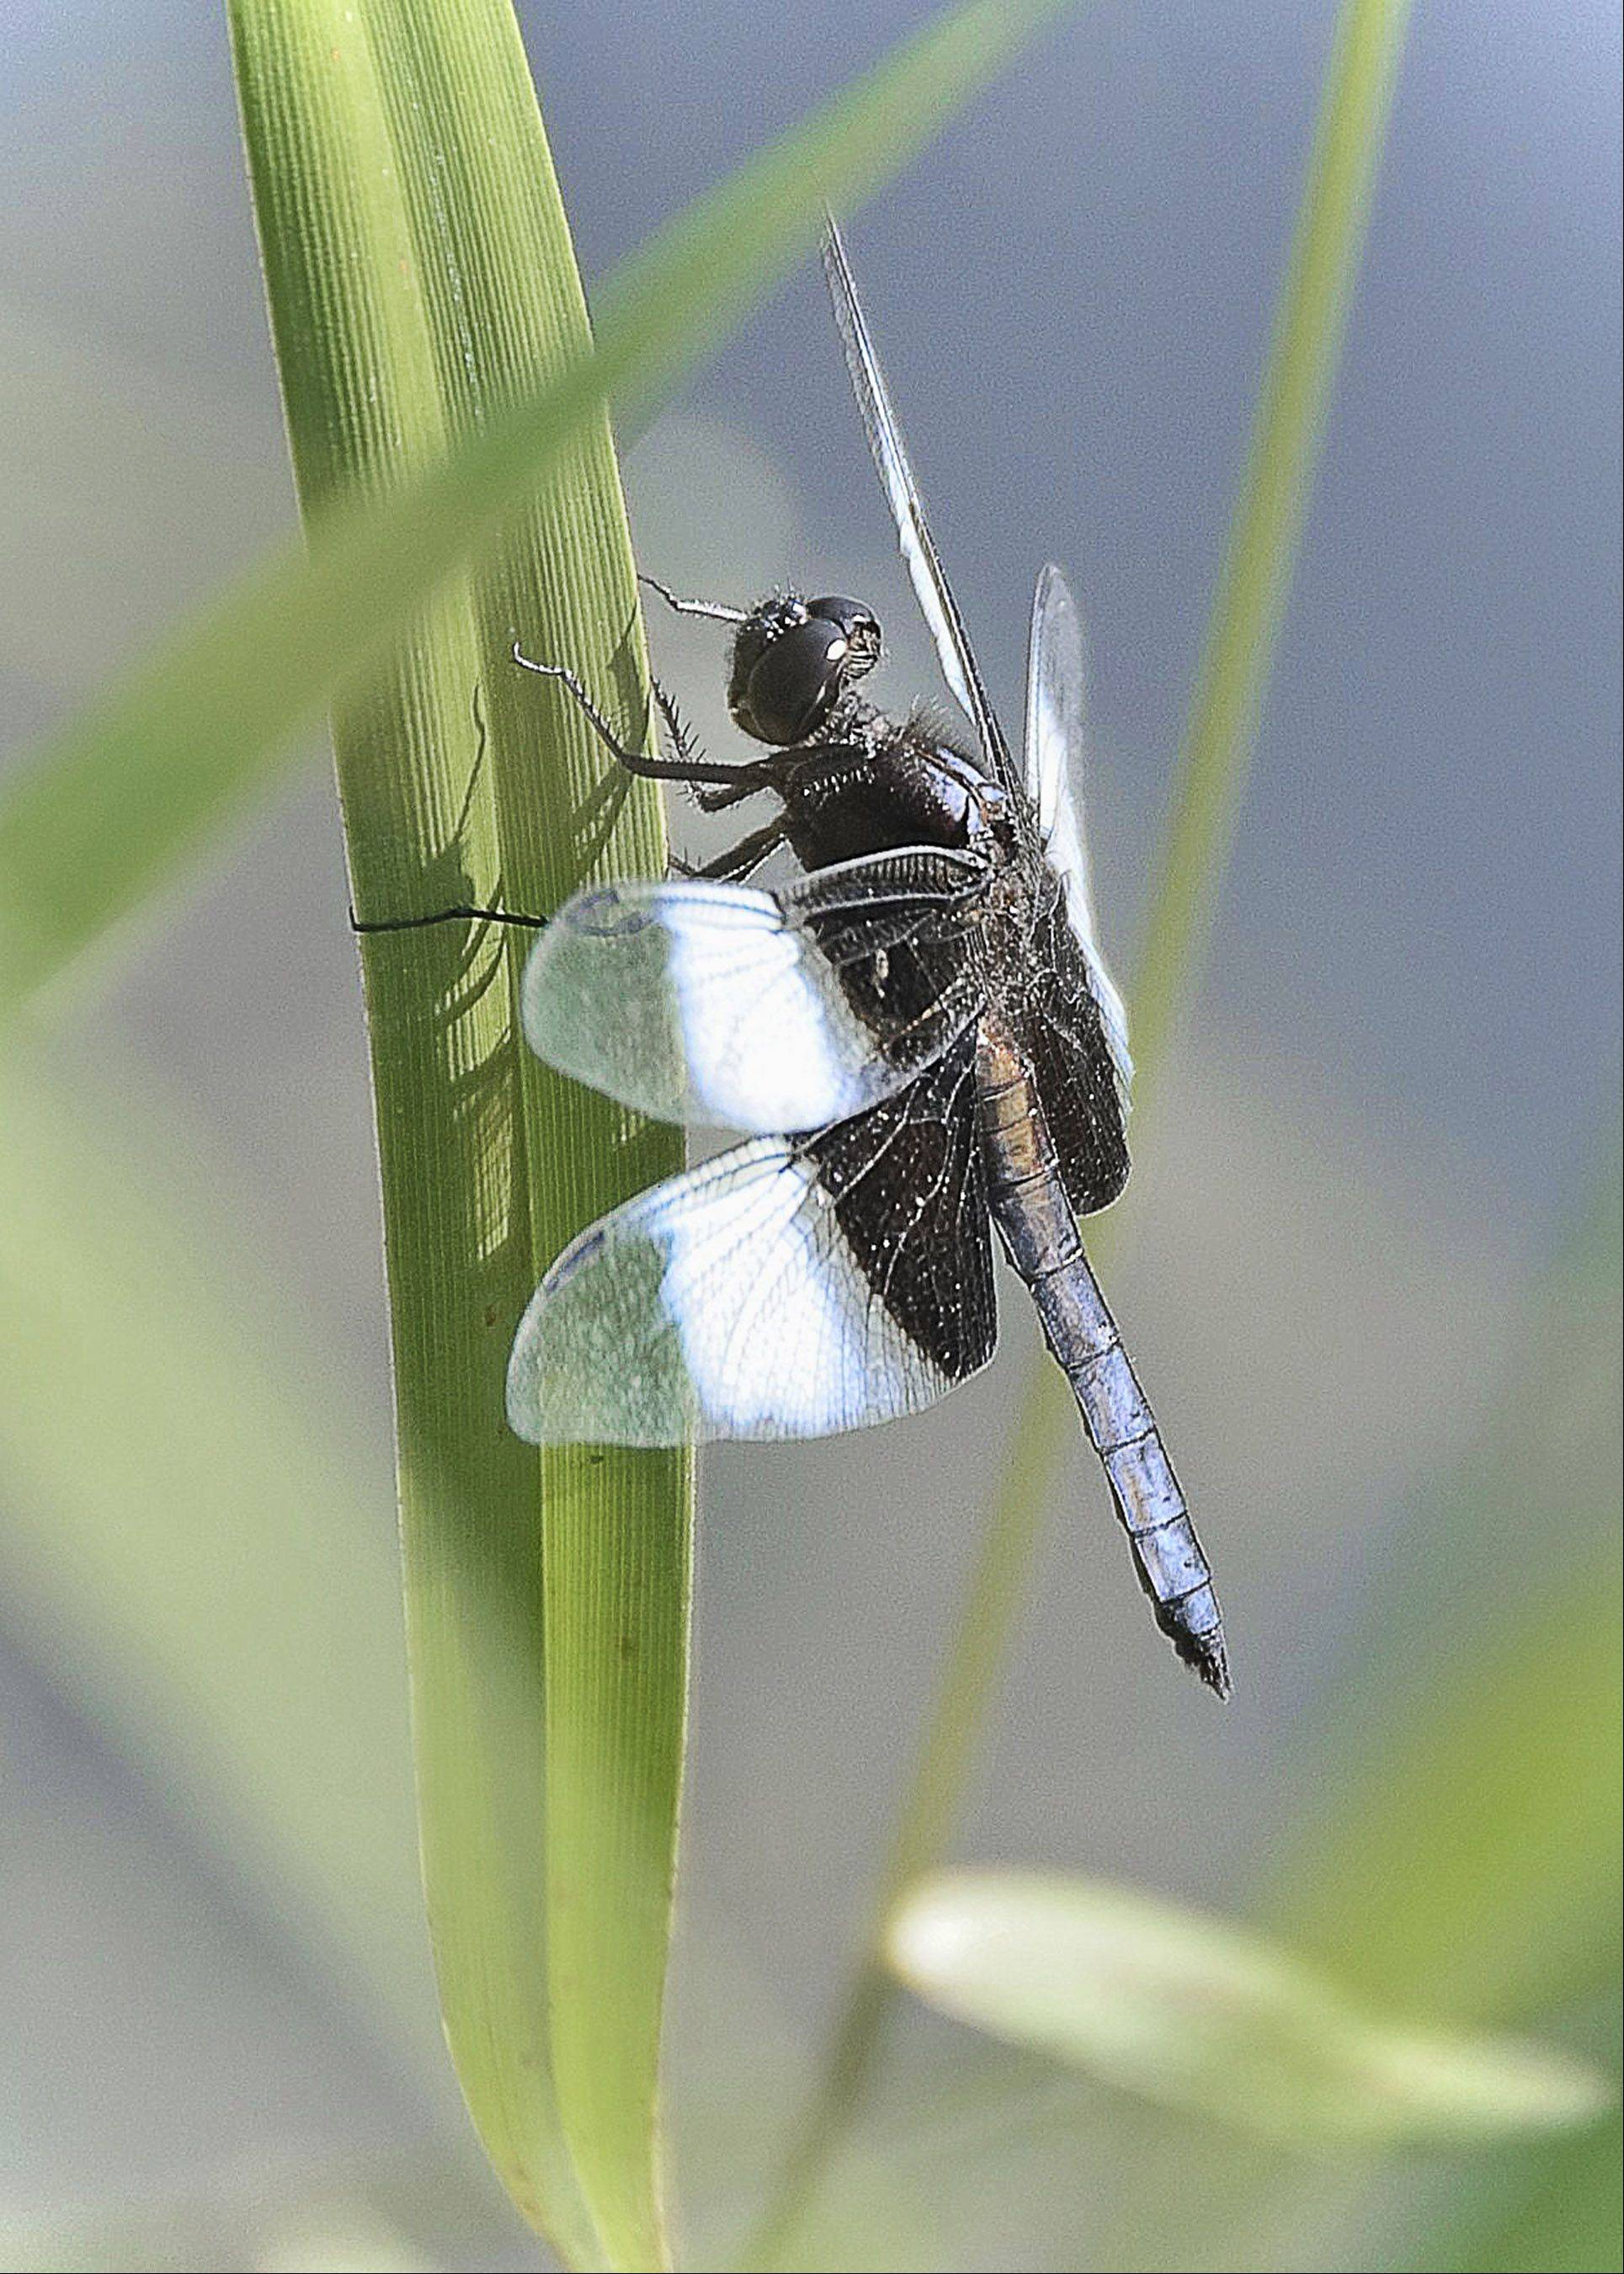 This photo was taken this past week at the Lake in the Hills fen. Delicate in design and dressed in a variety of colors, dragonflies have always caught my eye. The pastel appearance added to the softness of the shot.